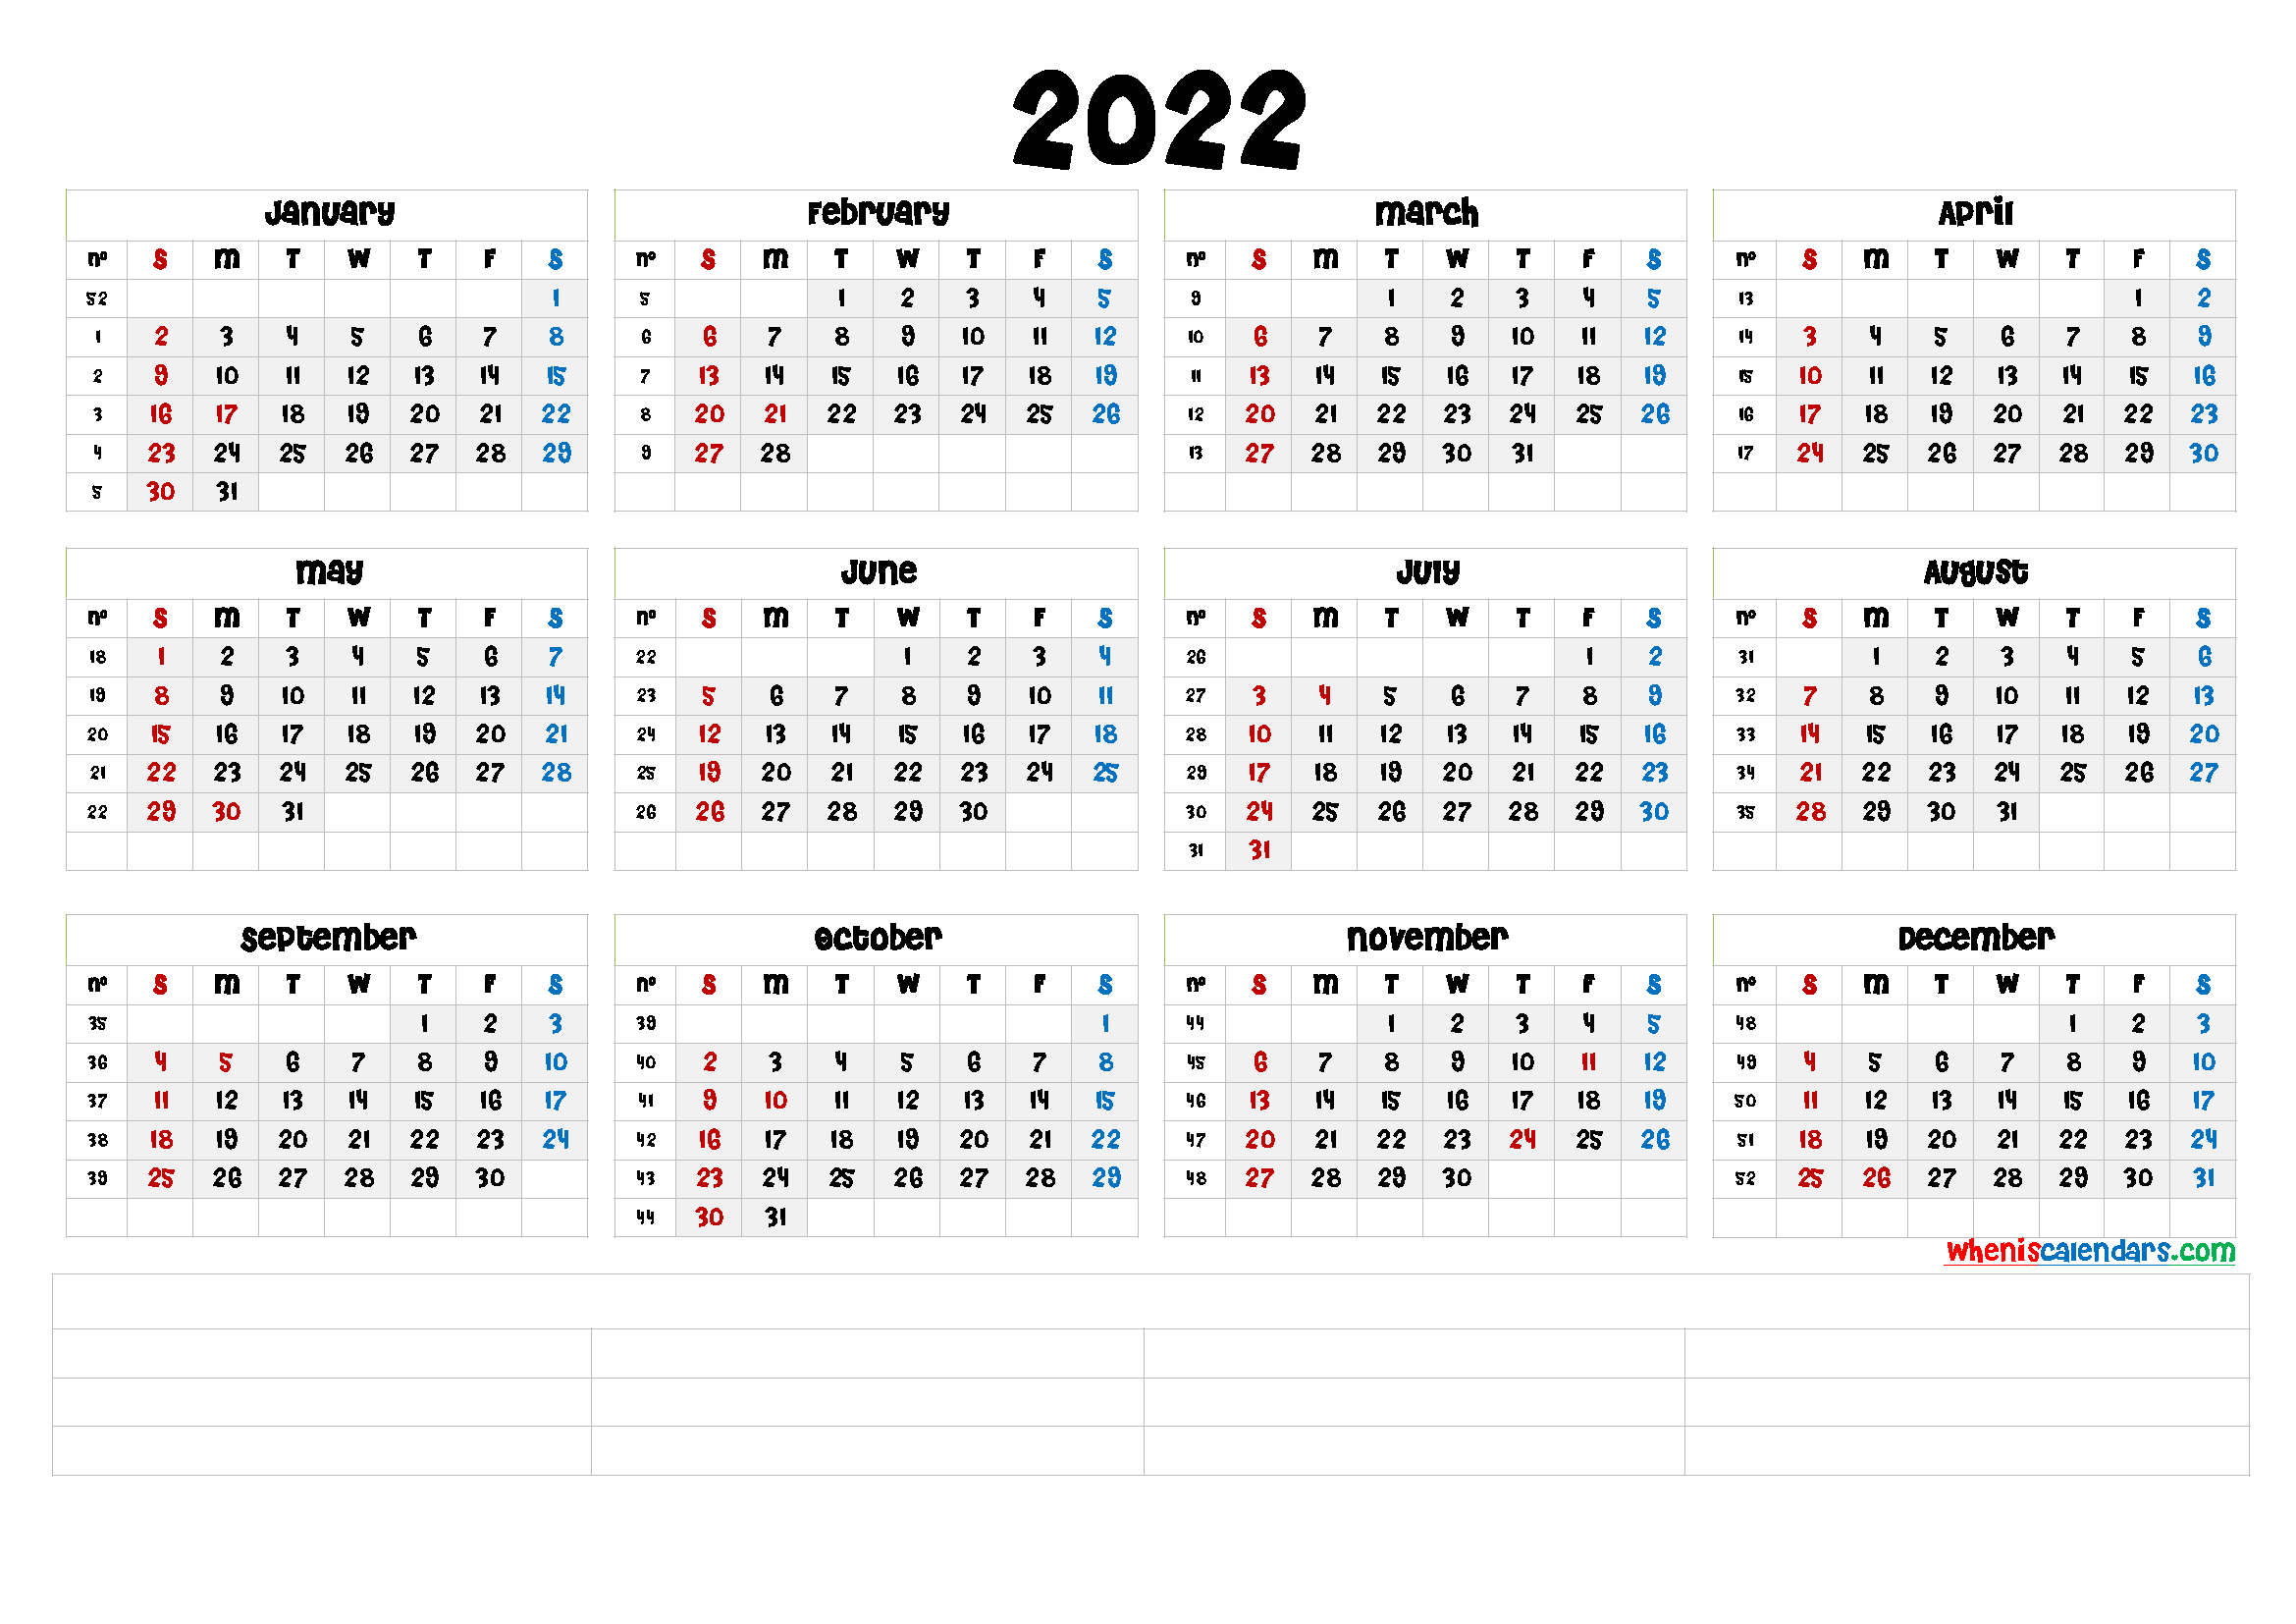 Downloadable 2022 Monthly Calendar - CalendraEX.com